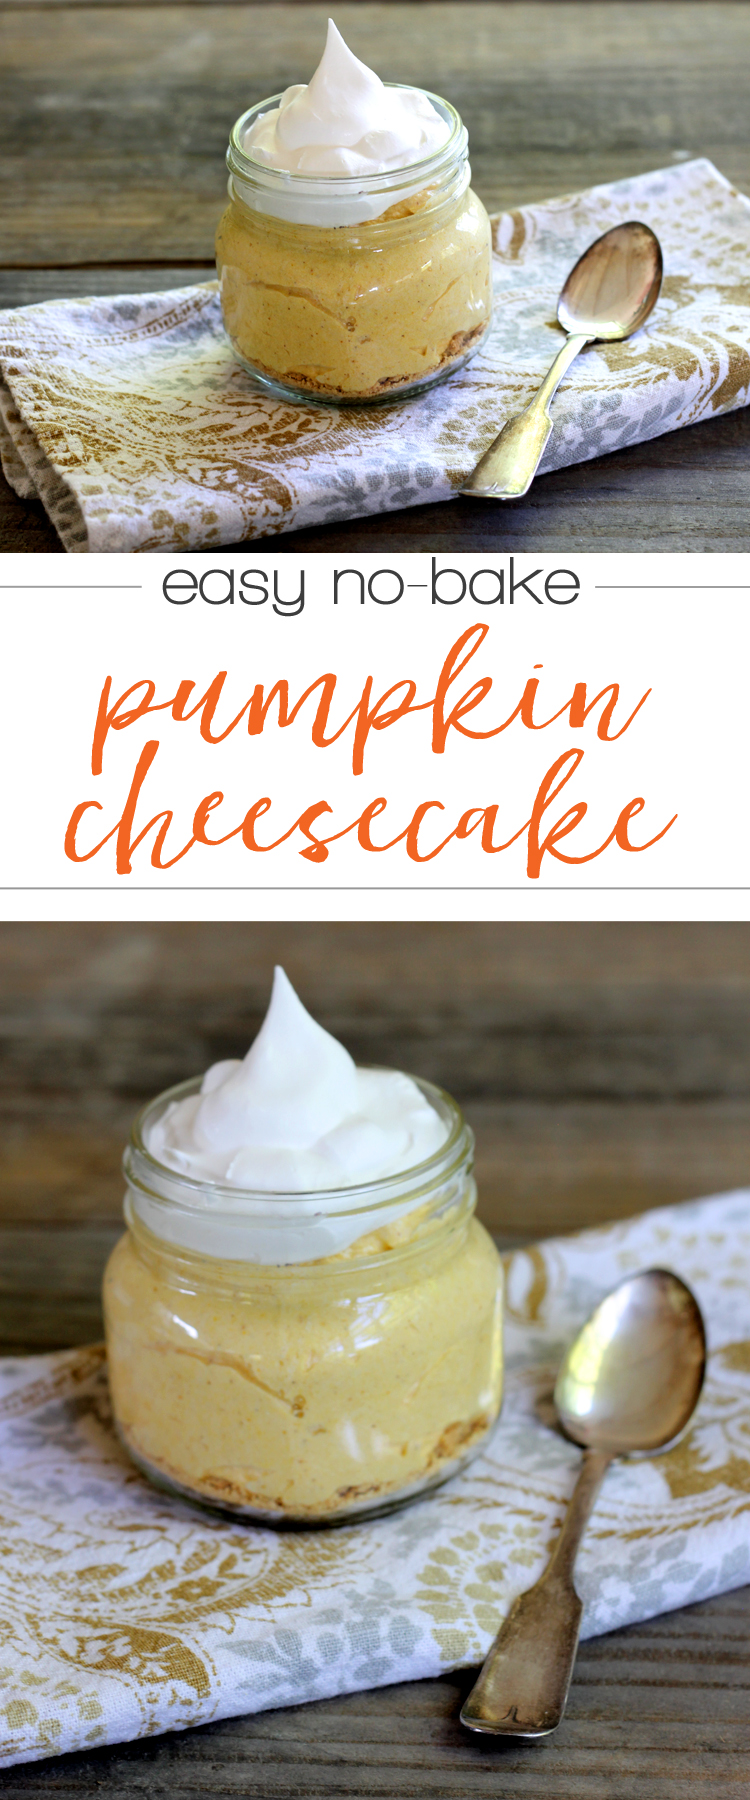 easy no bake pumpkin cheesecake recipe